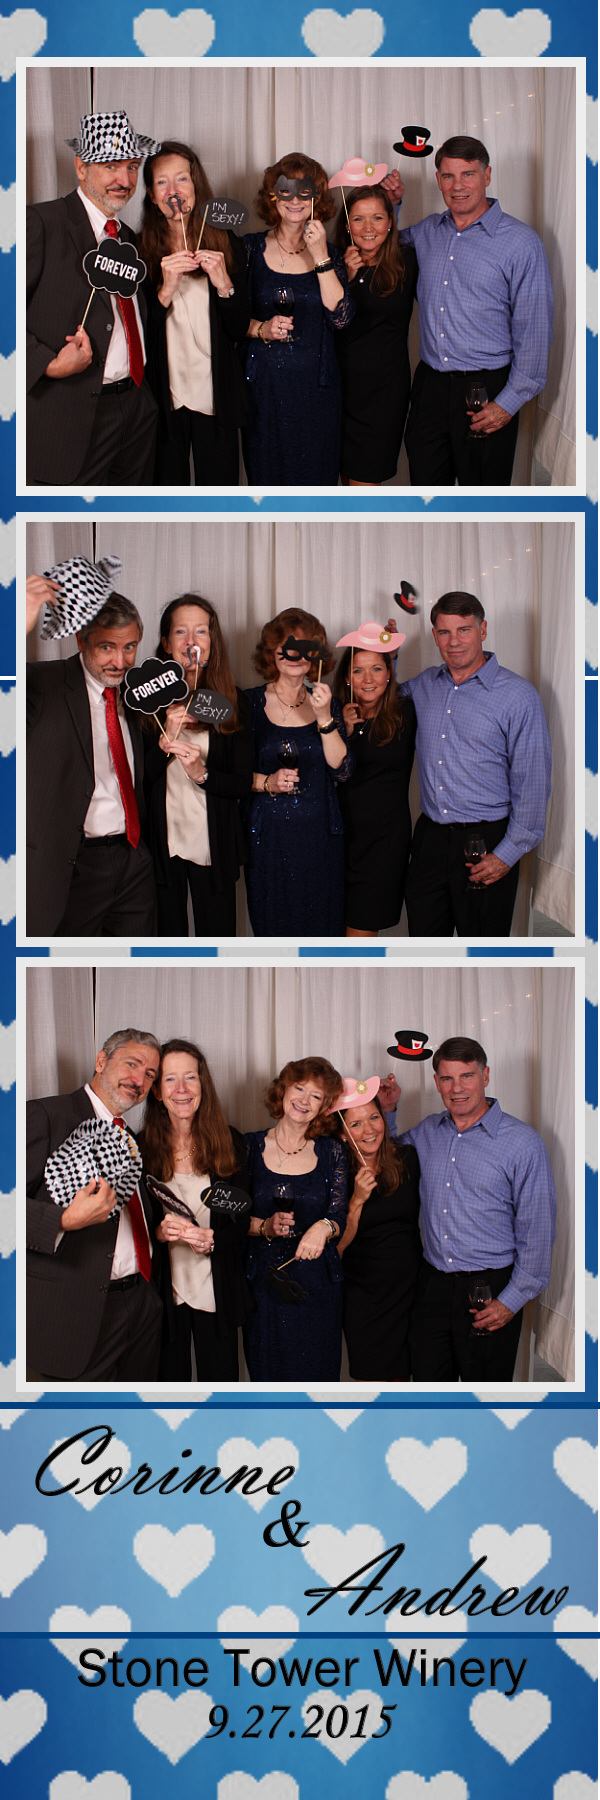 Guest House Events Photo Booth C&A (15).jpg